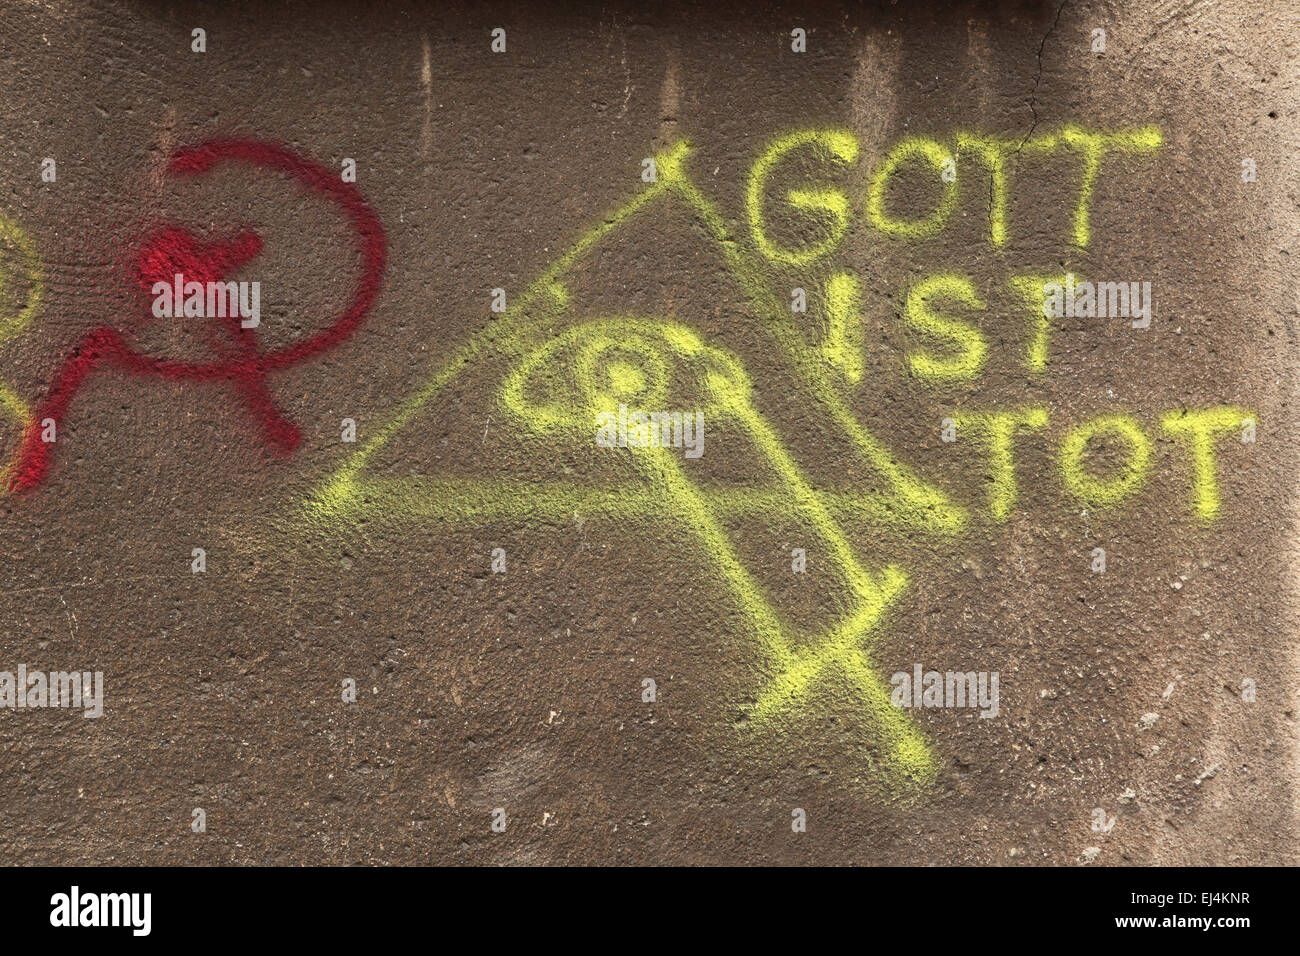 Gott Ist Tot (The God is Dead). Eye of Providence. Hammer and Sickle. Street graffiti in Gdansk, Poland. - Stock Image